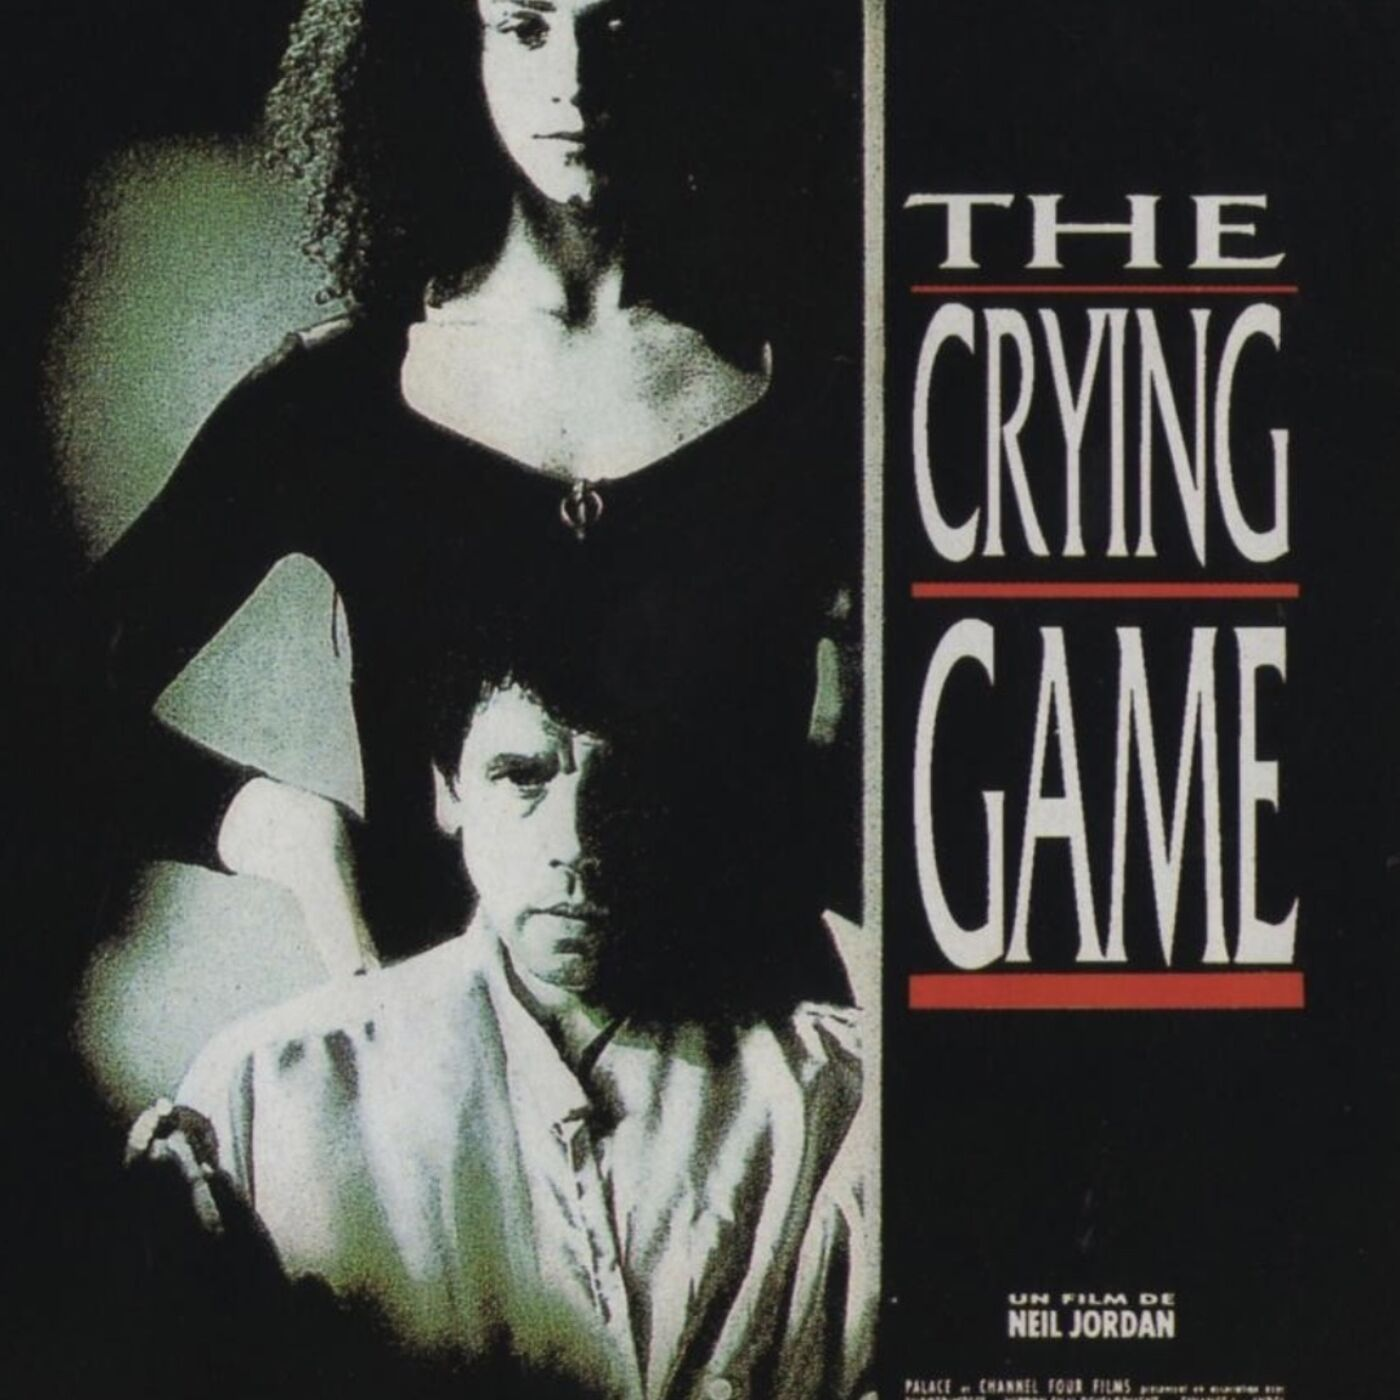 GREAT British Film - The Oscar winning Neil Jordan talks about his iconic 1992 Brit-flick The Crying Game